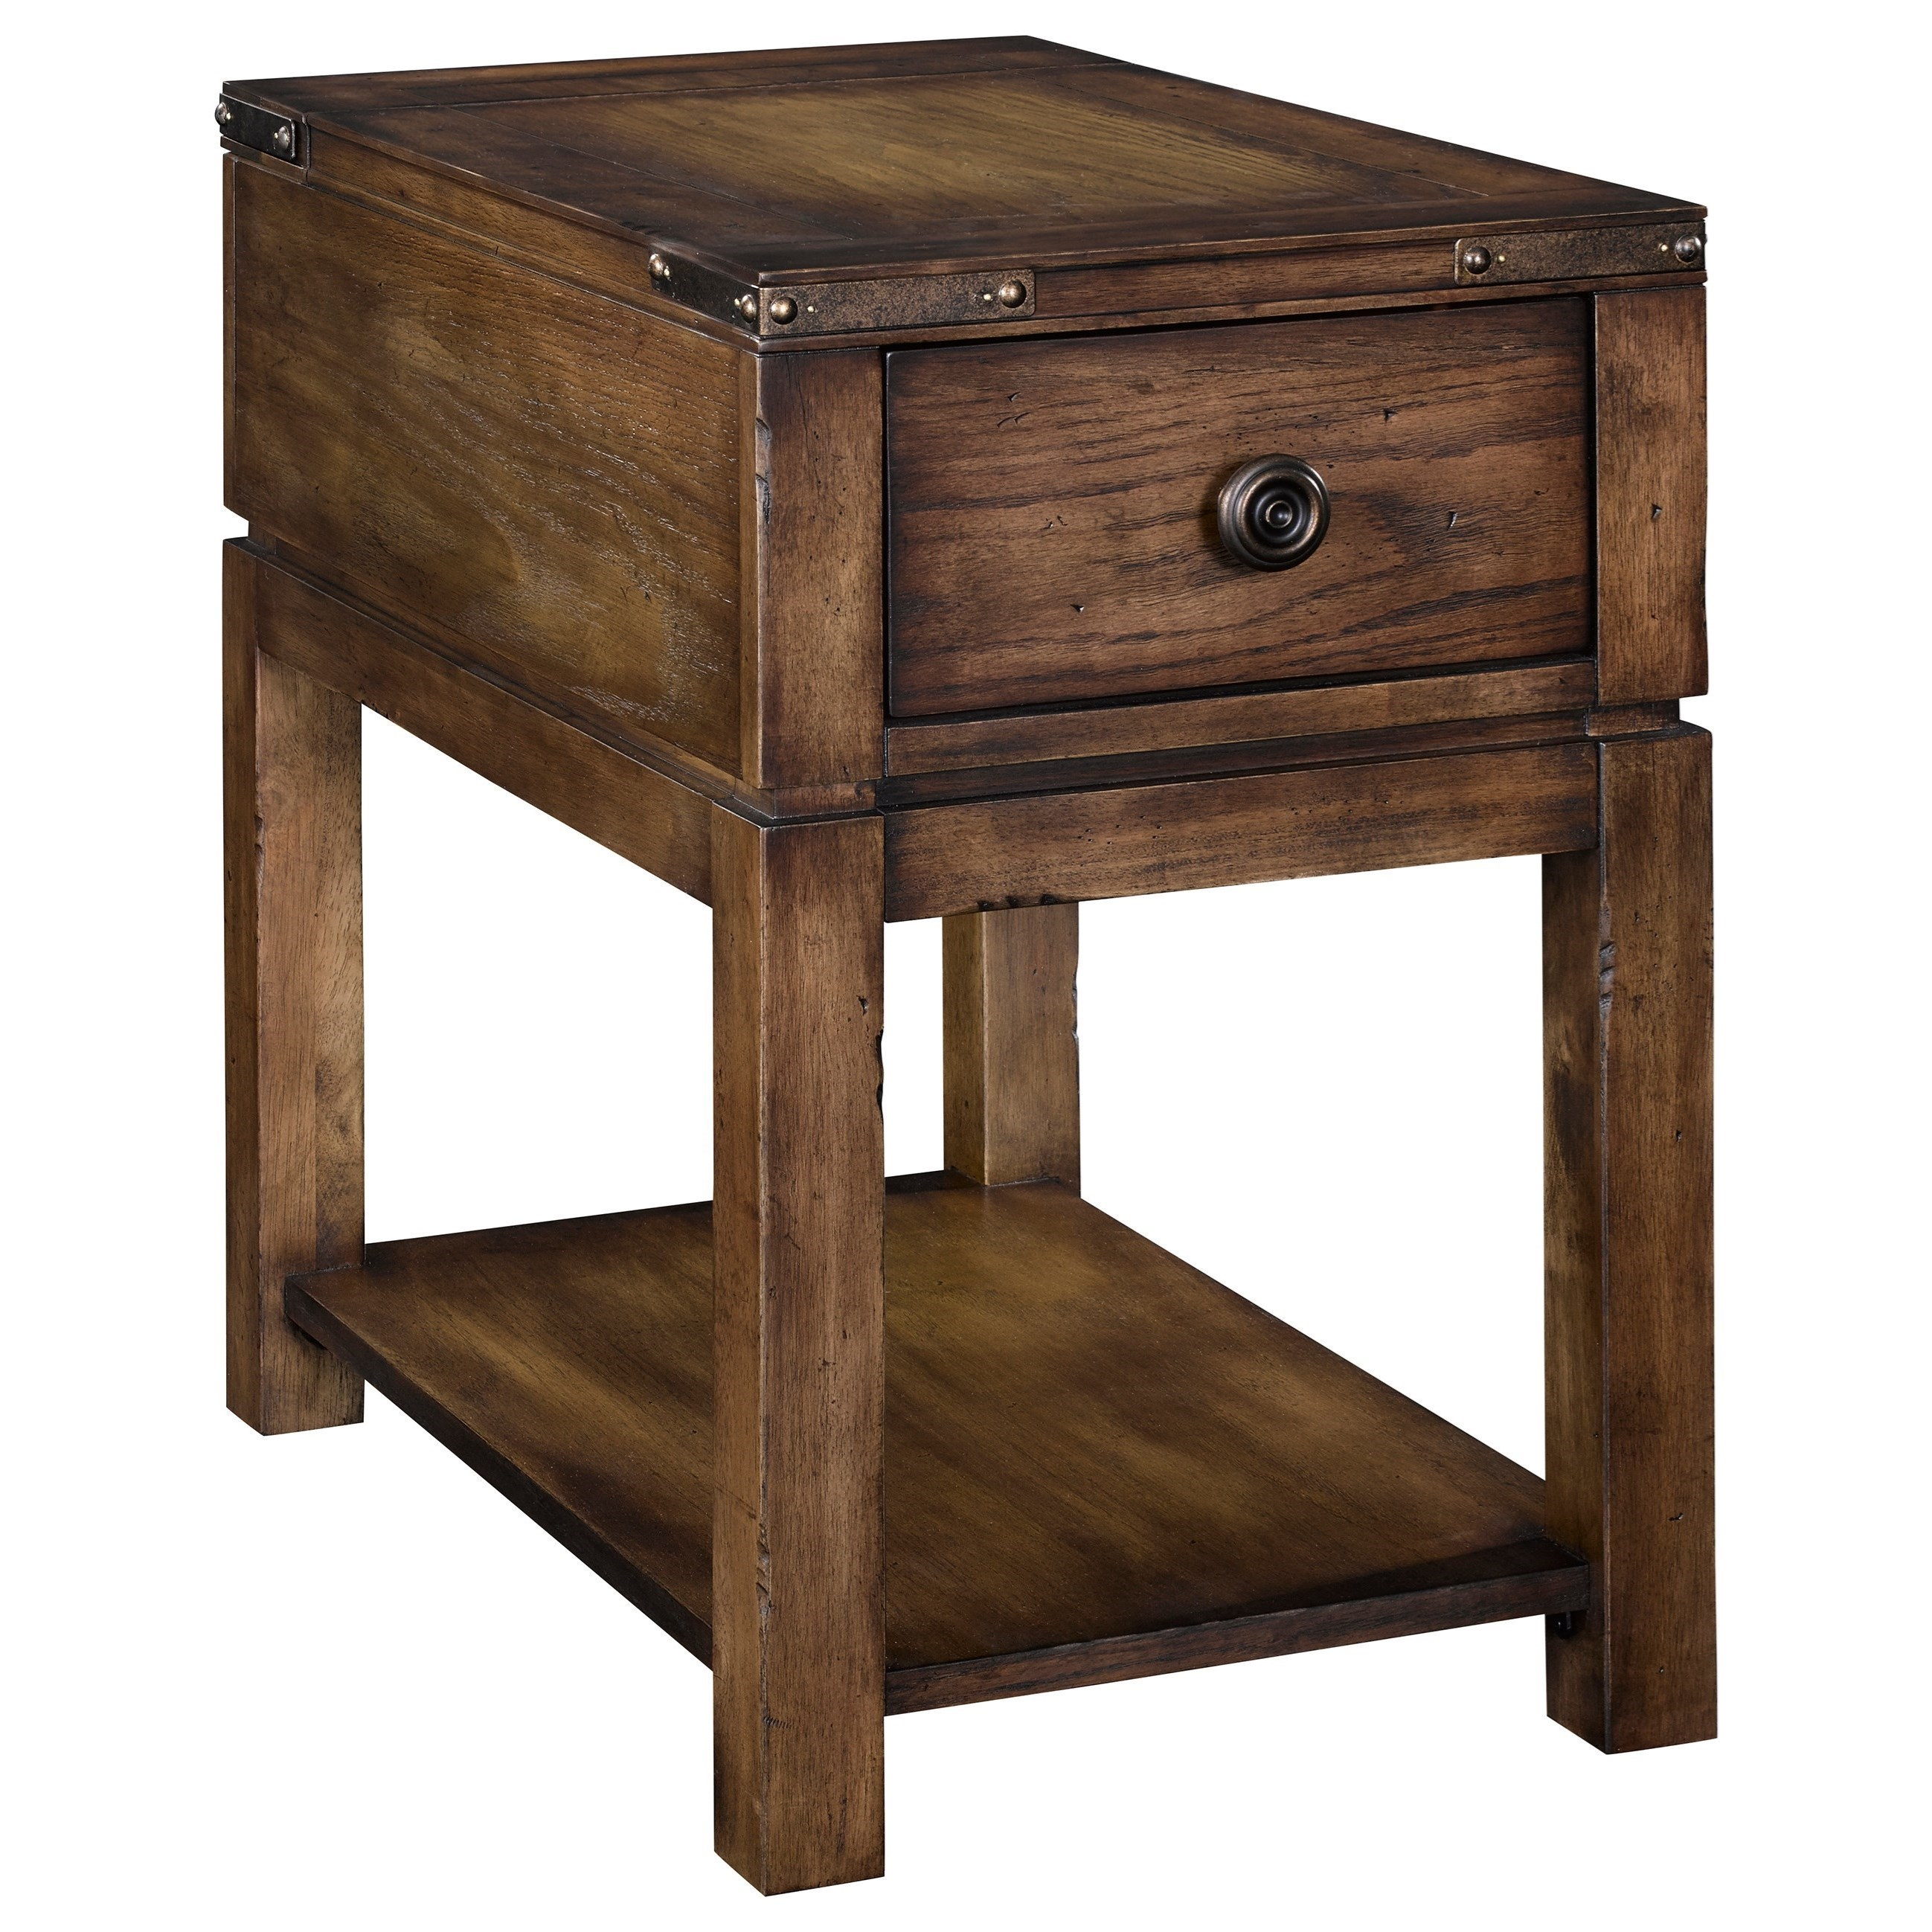 Broyhill Furniture Pike Place 1 Drawer Chairside Table With Power Strip/USB  Charger